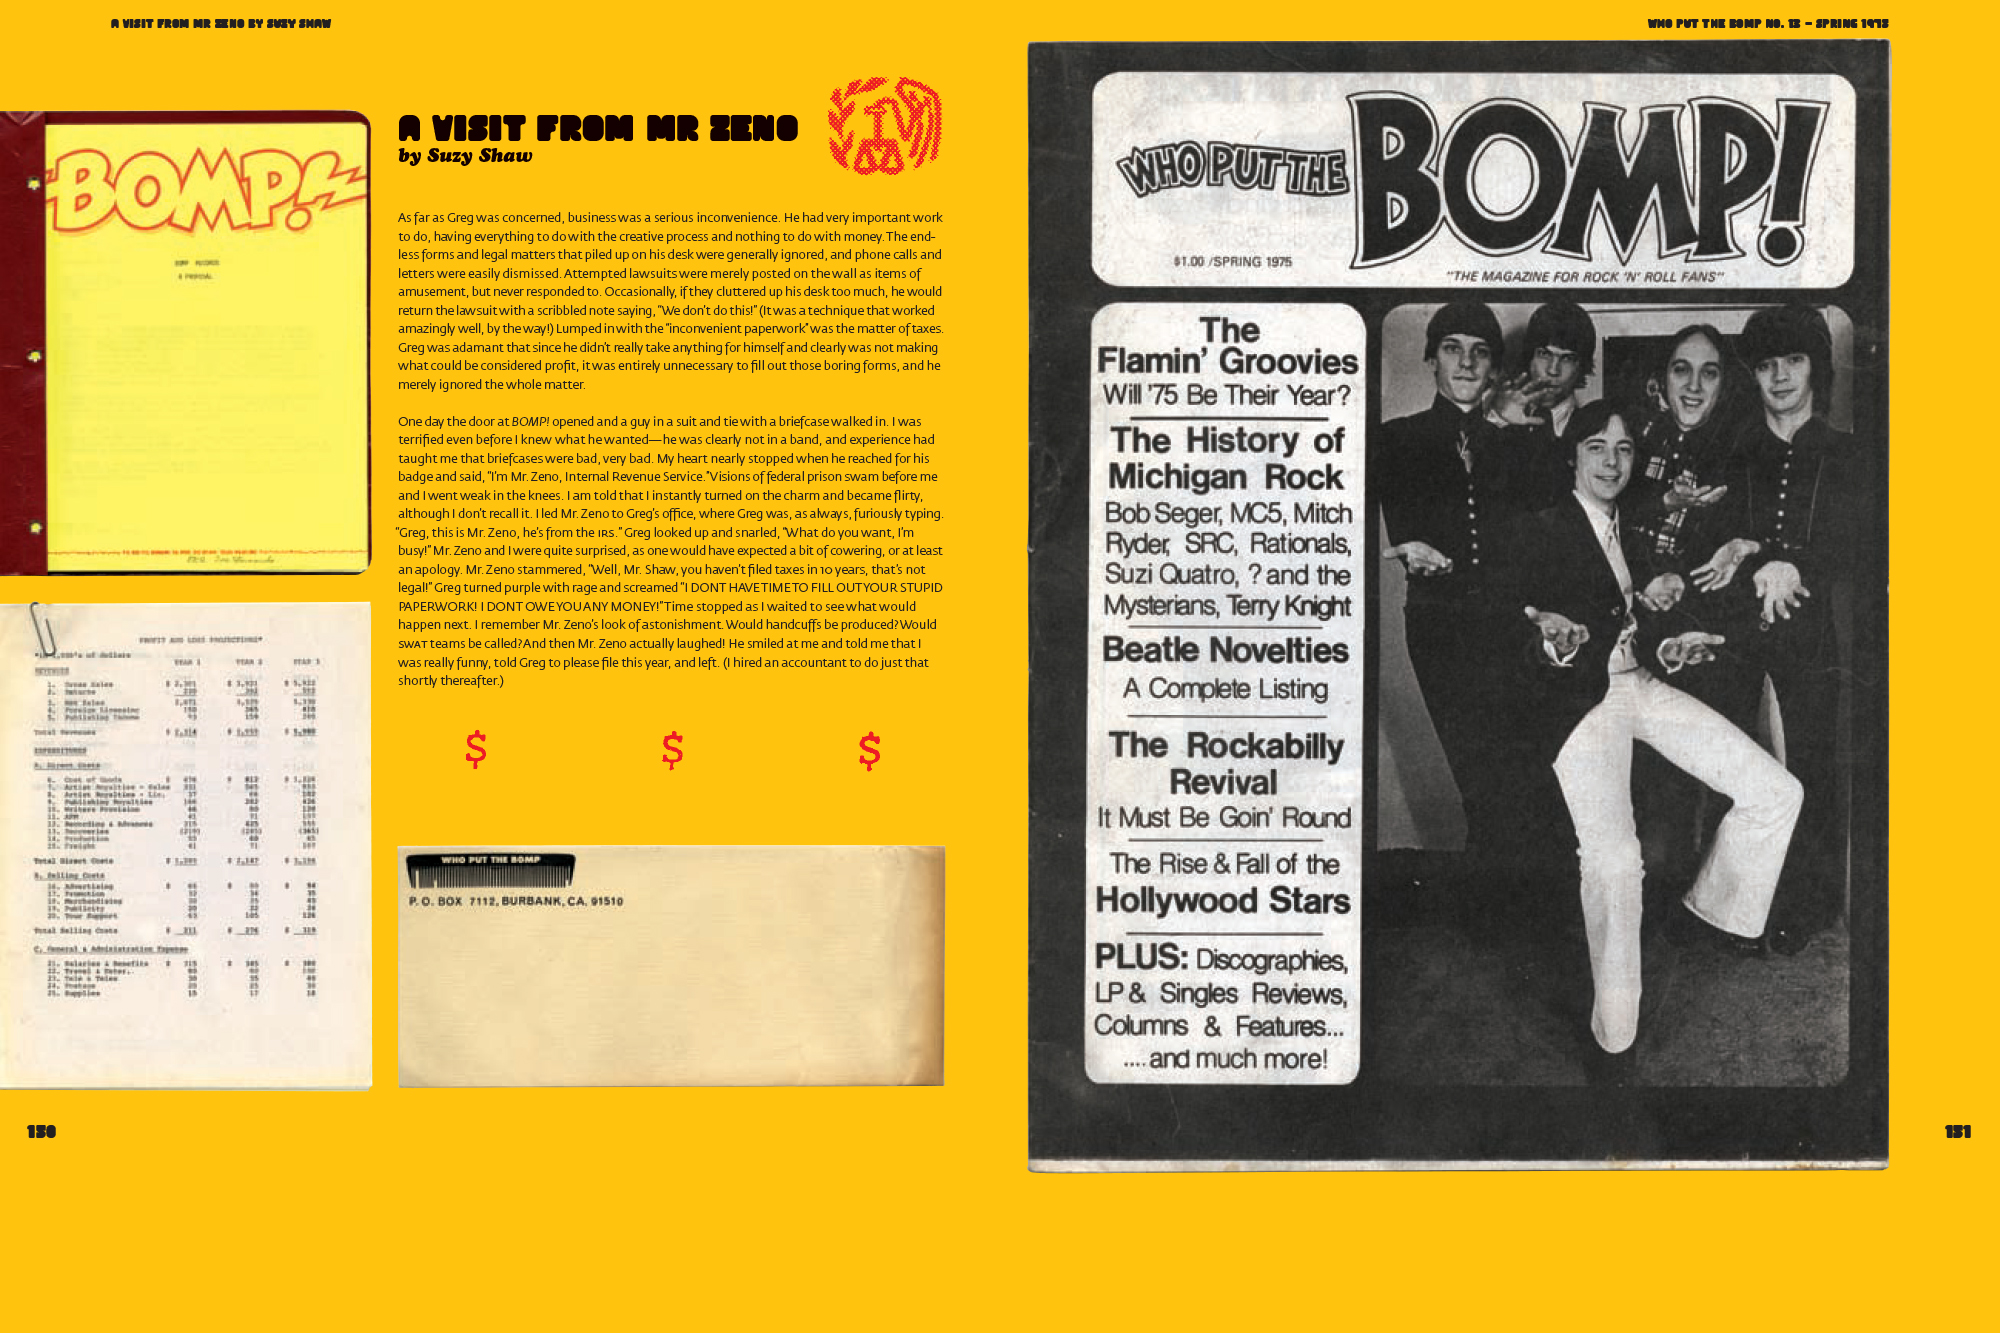 Pages from BOMP_COMPLETE-8.jpg